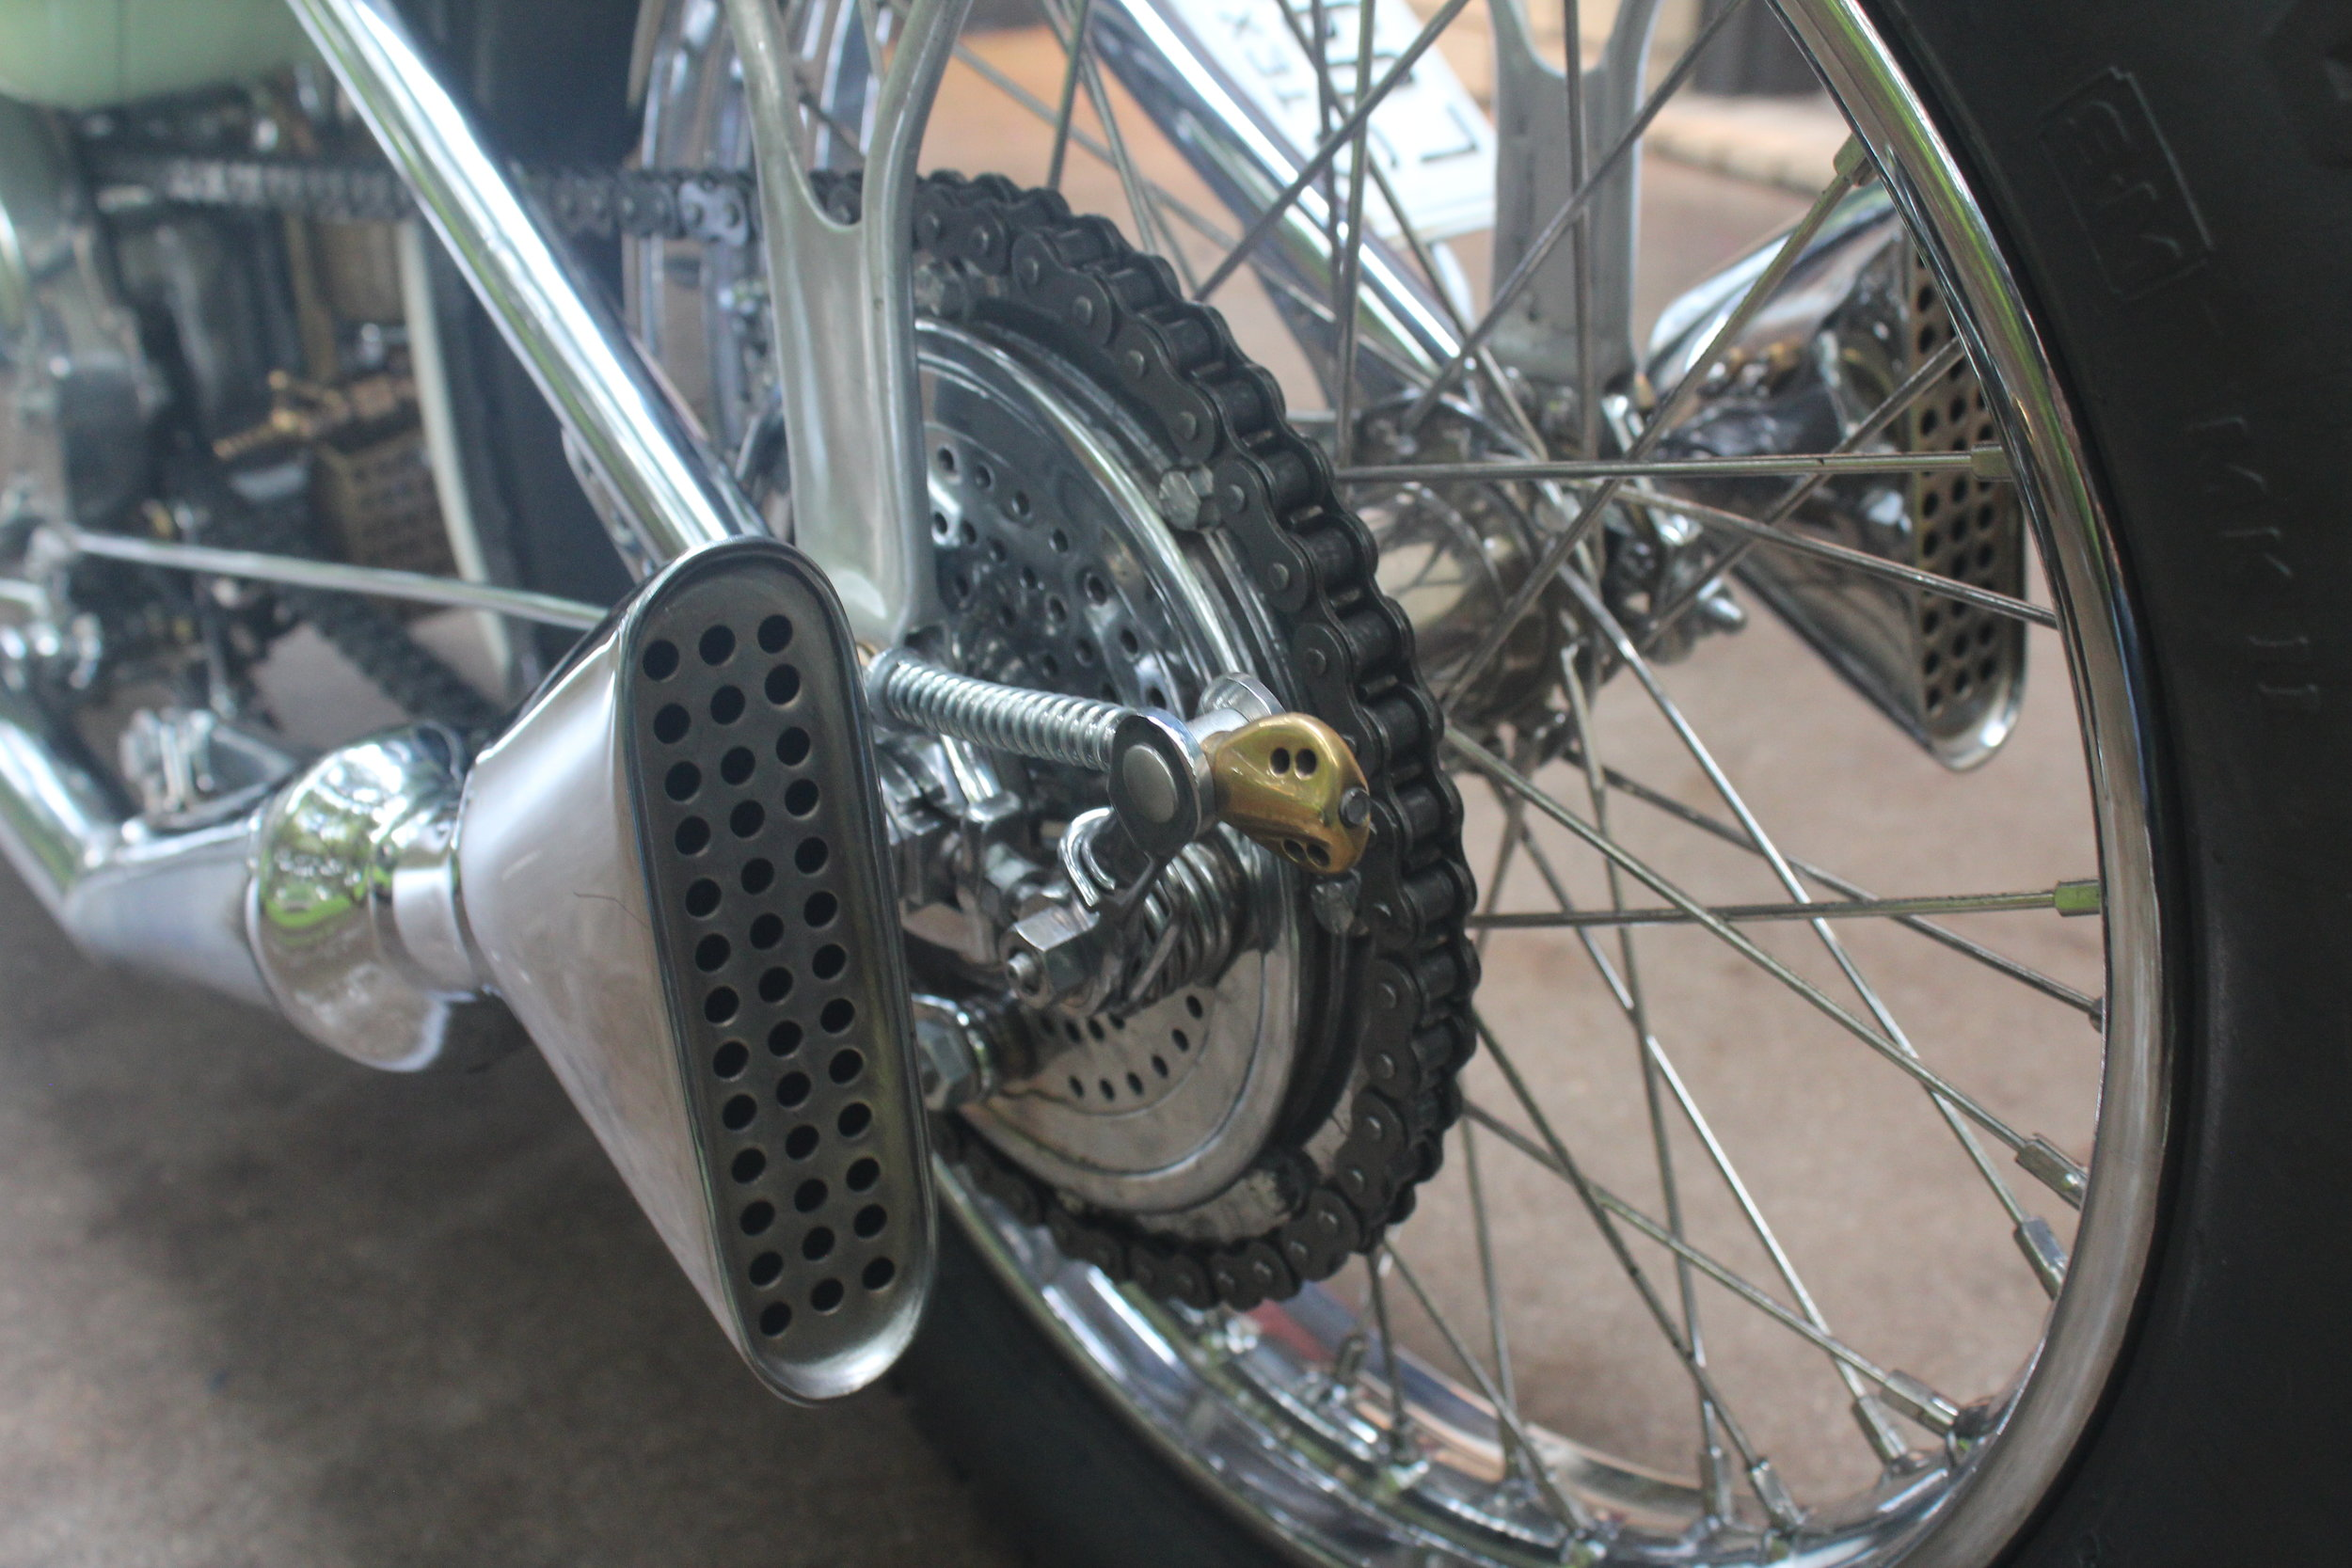 More details on the rear of the bike.